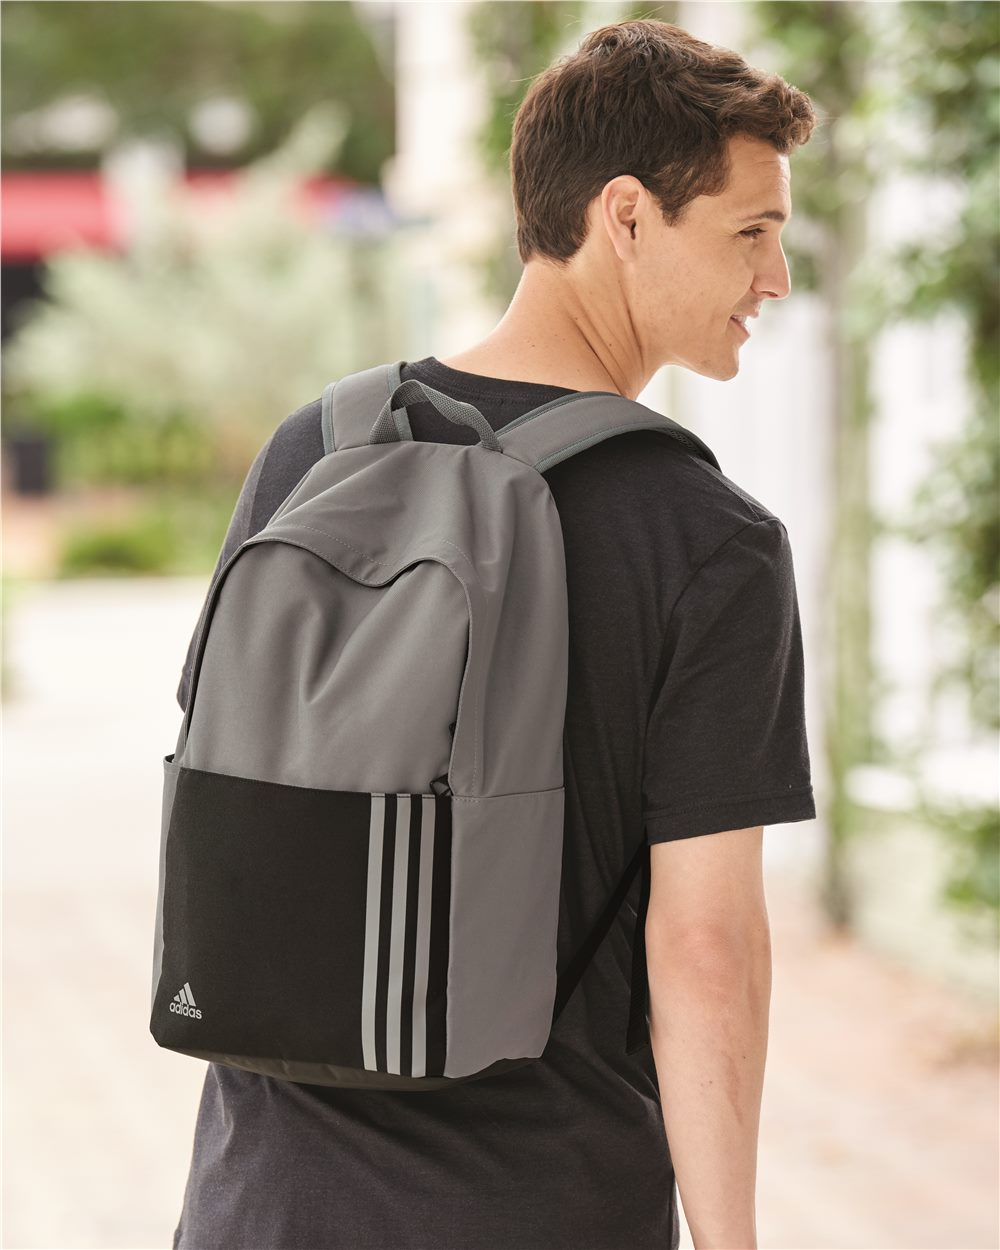 Adidas A301 - 18L 3-Stripes Small Backpack